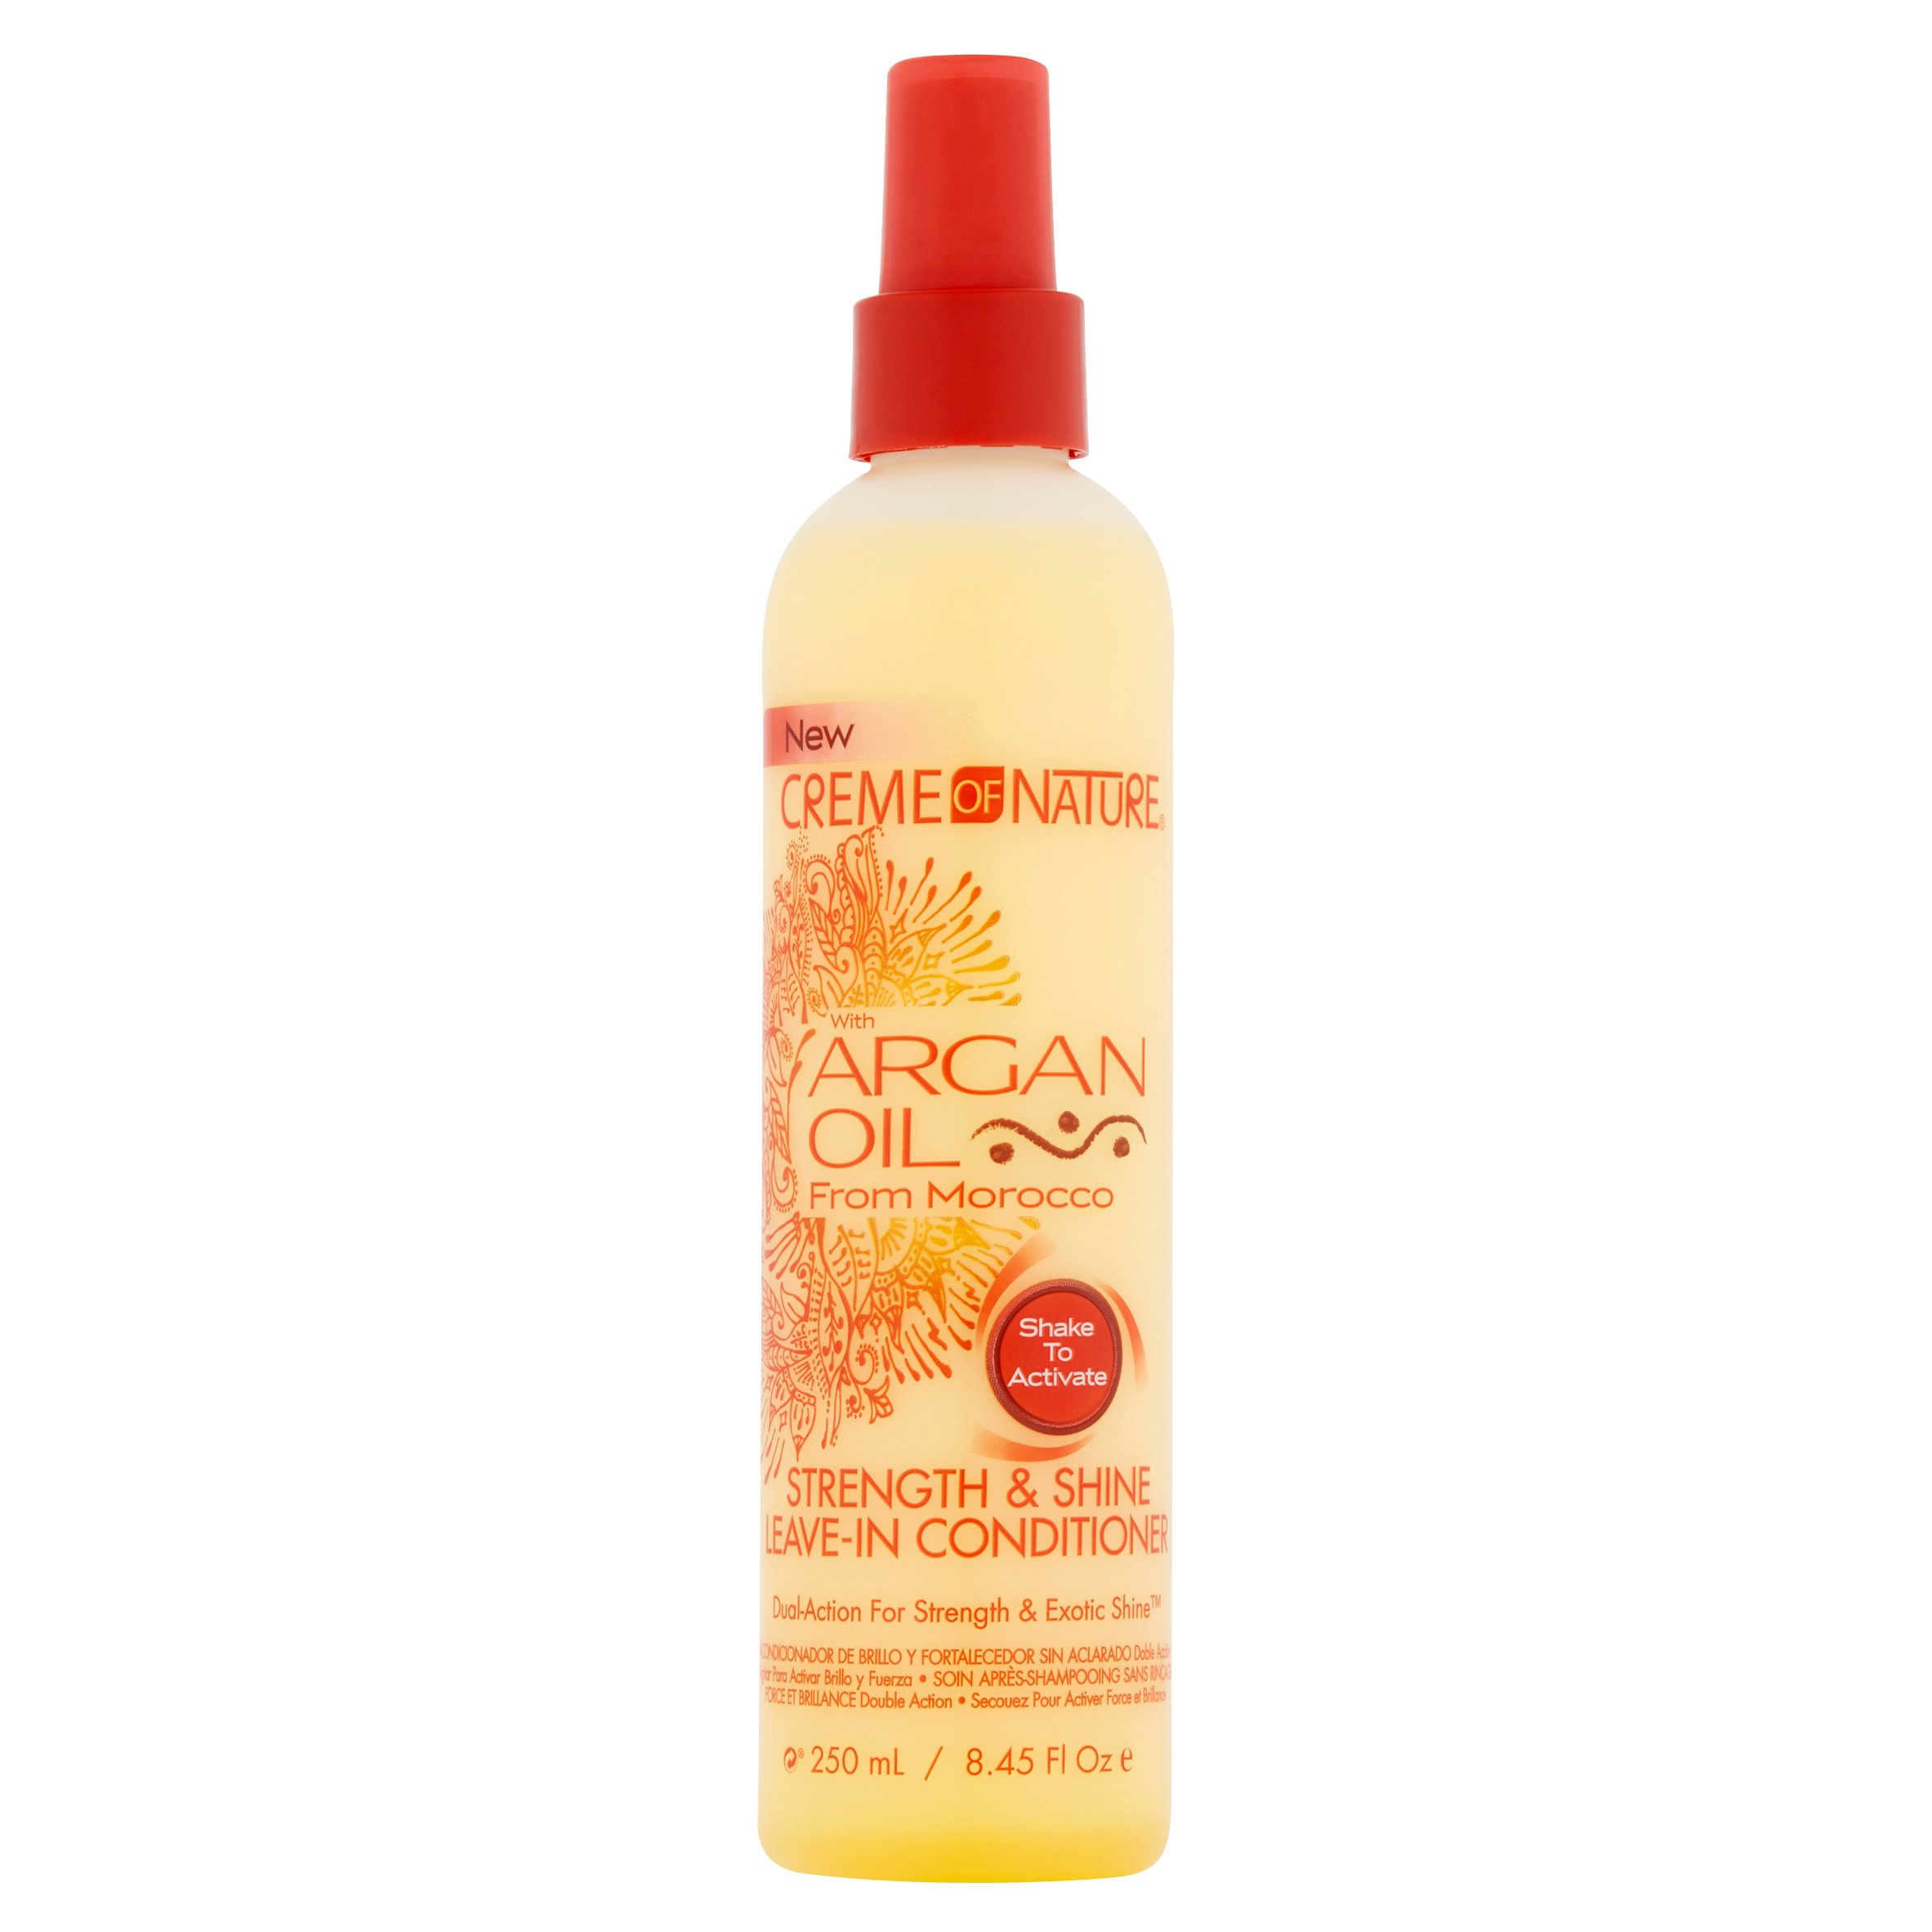 Creme Of Nature Strength & Shine Leave-In Conditioner with Argan Oil, 8.45 fl oz